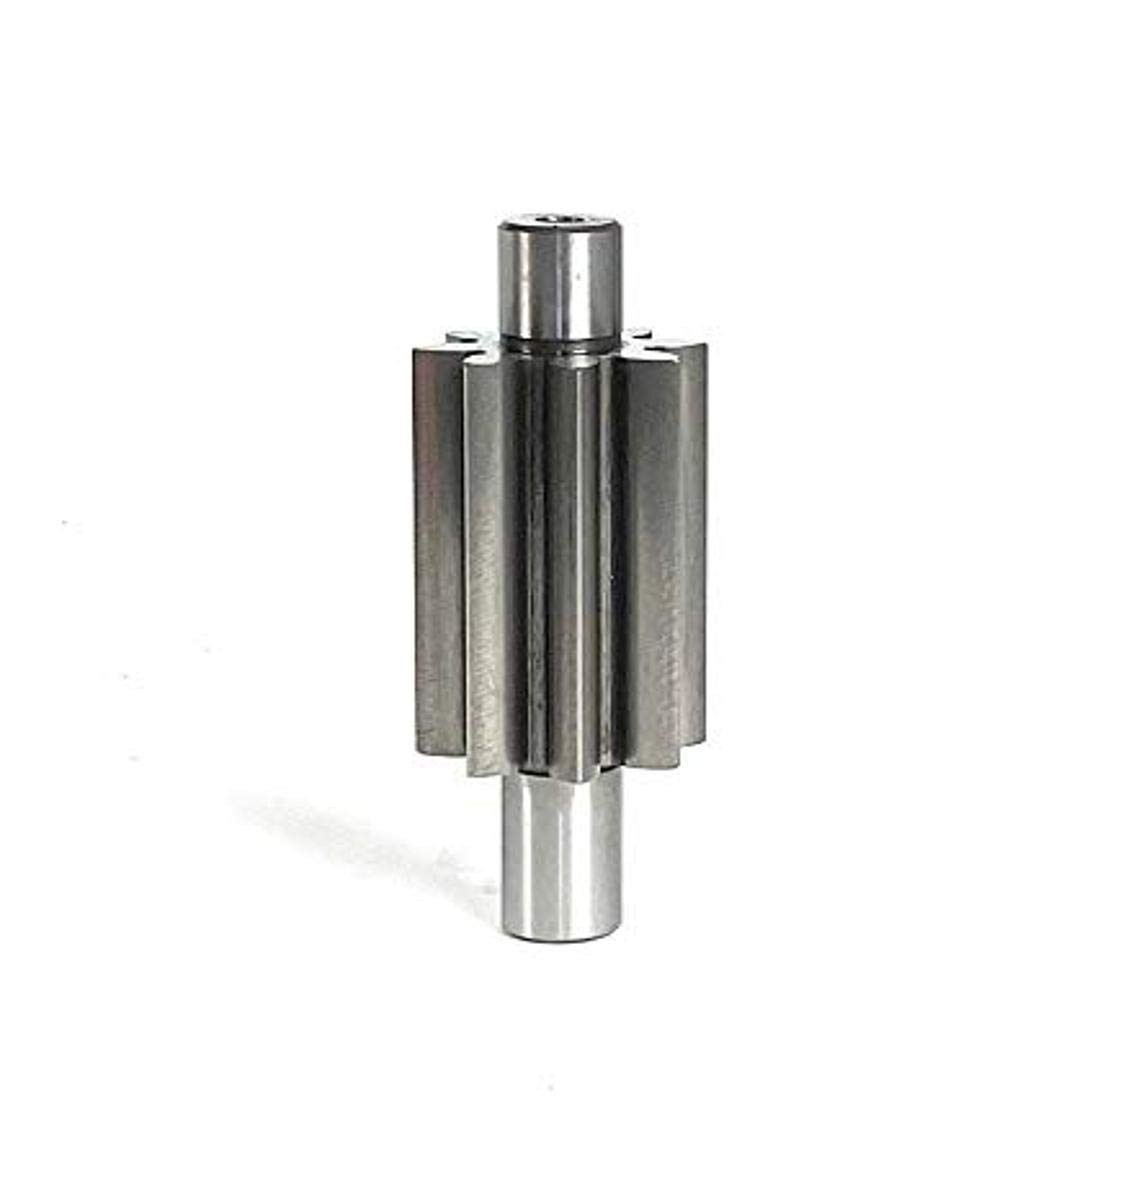 1W7239 Shaft A - Fits: 2021 autumn and winter new 2021 model C15 C18 3408 3406 3412